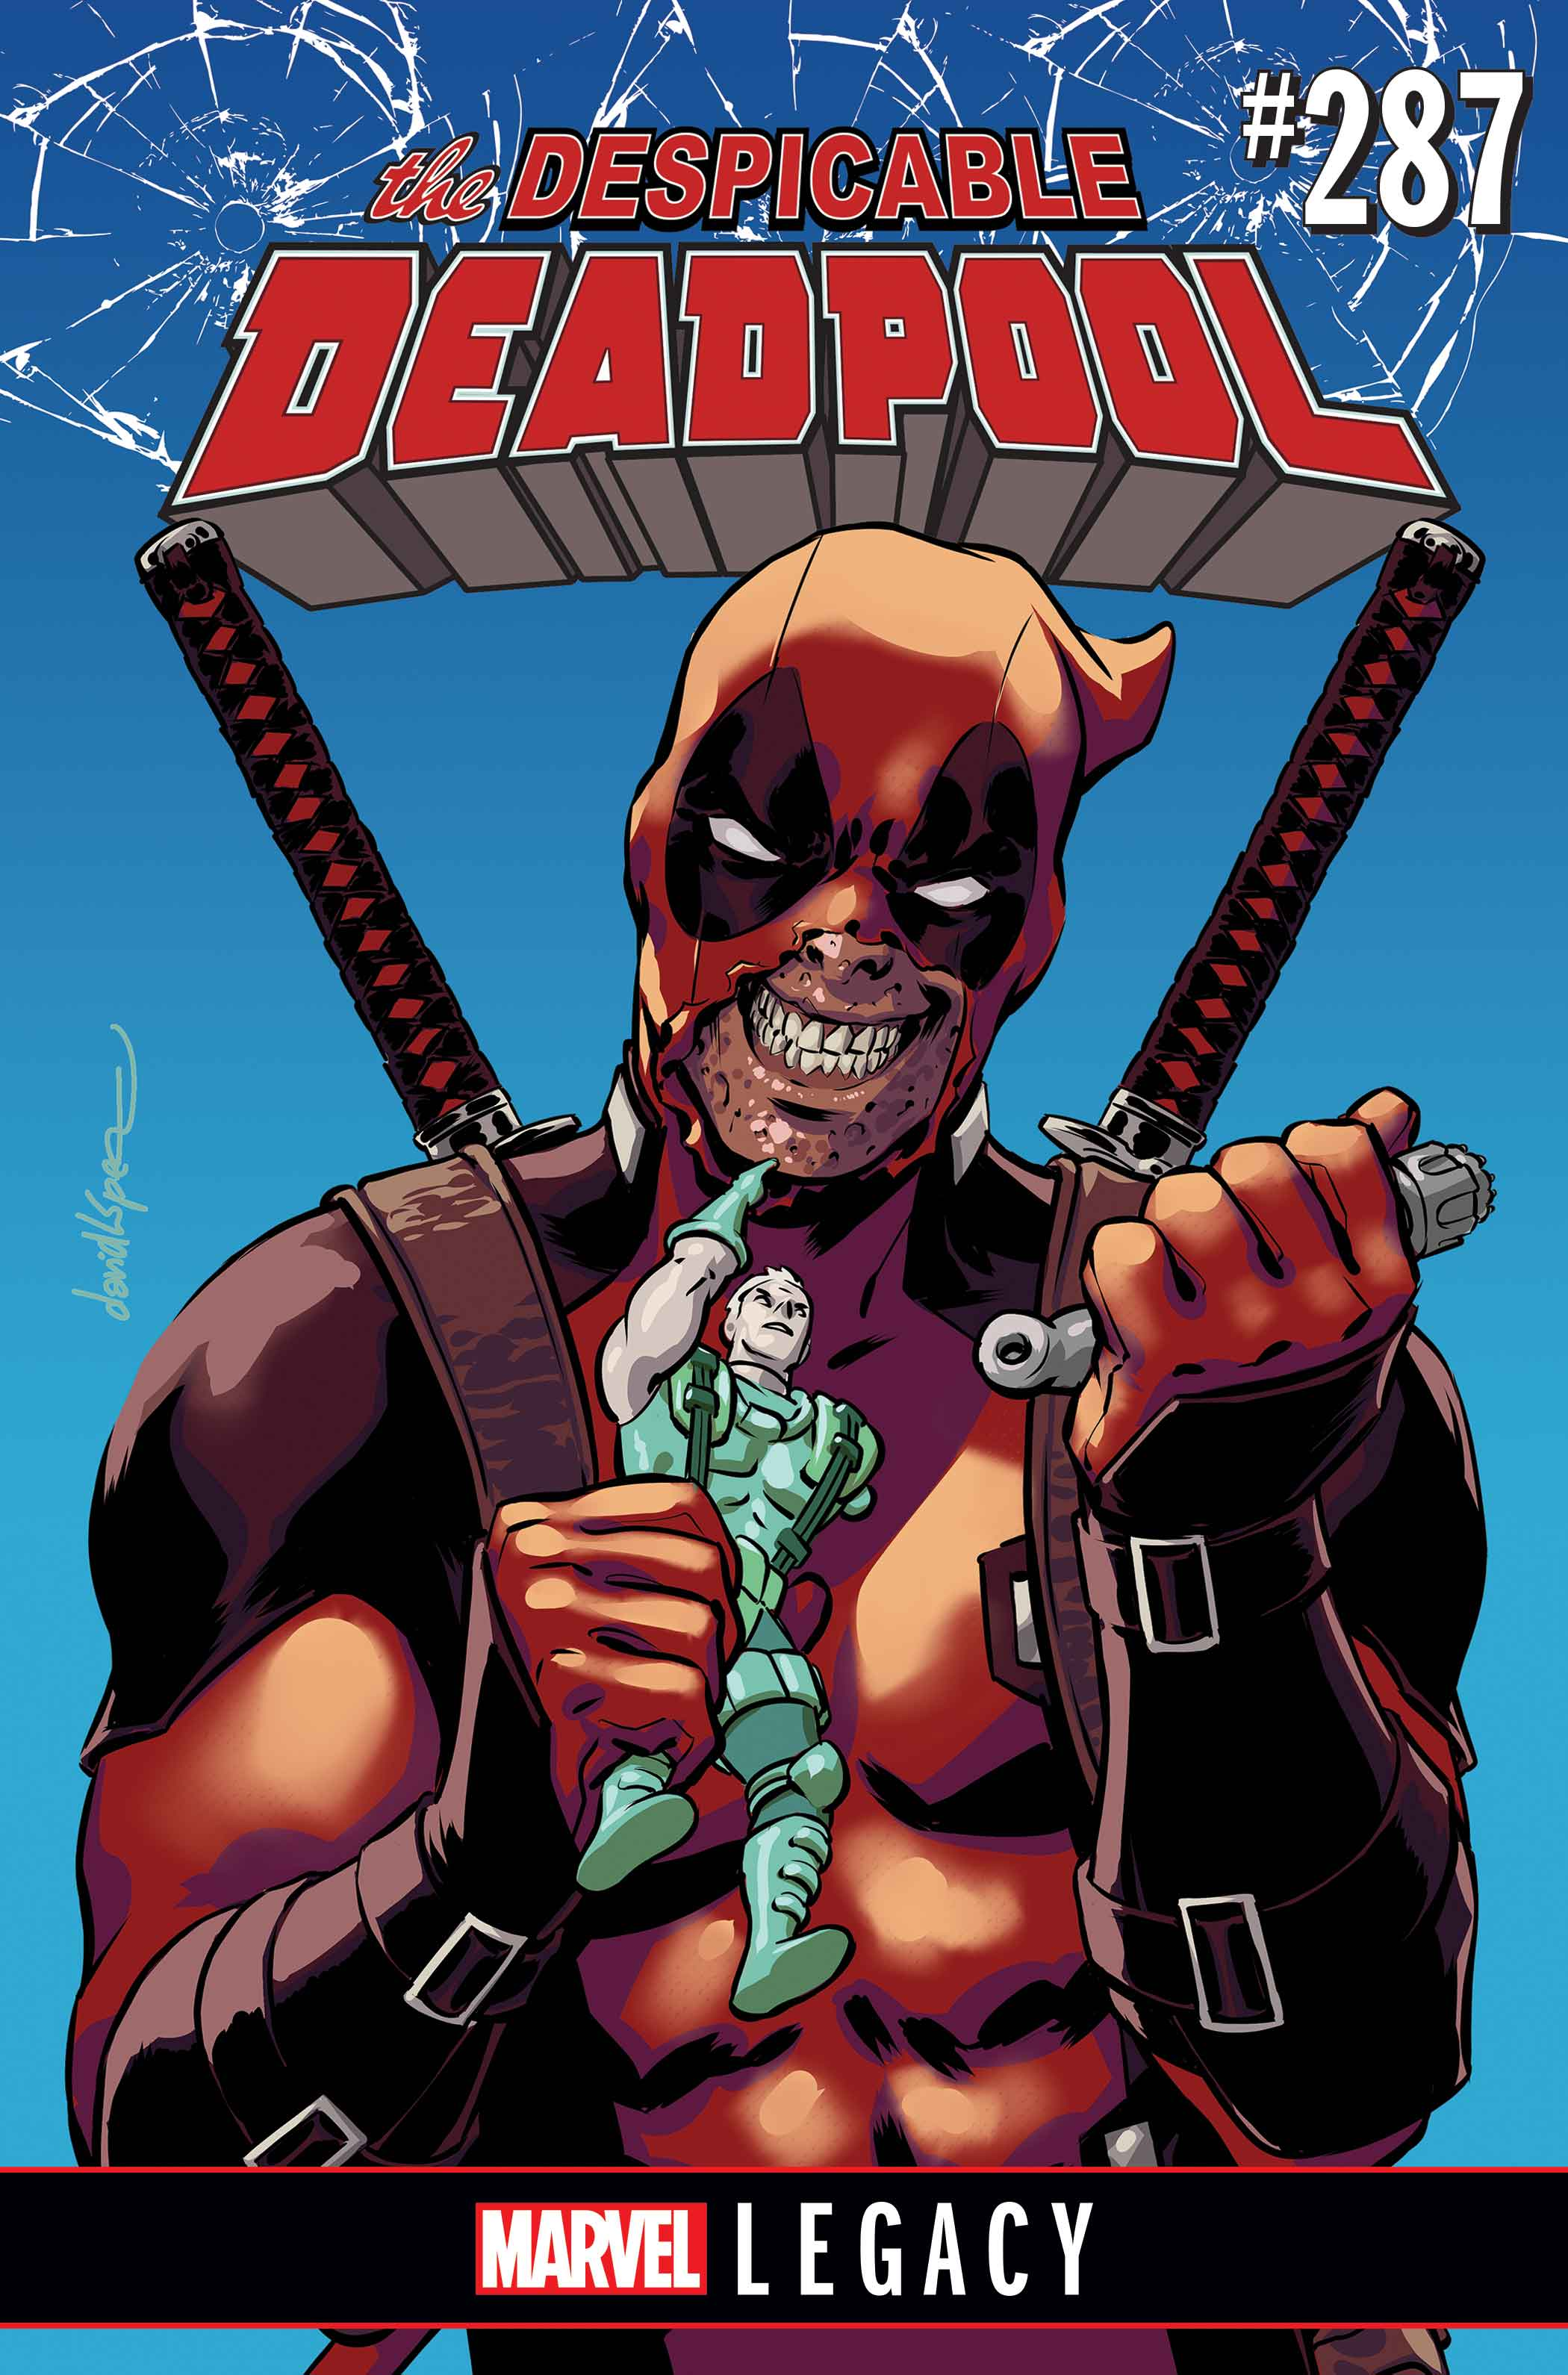 DESPICABLE DEADPOOL LEGACY CVR